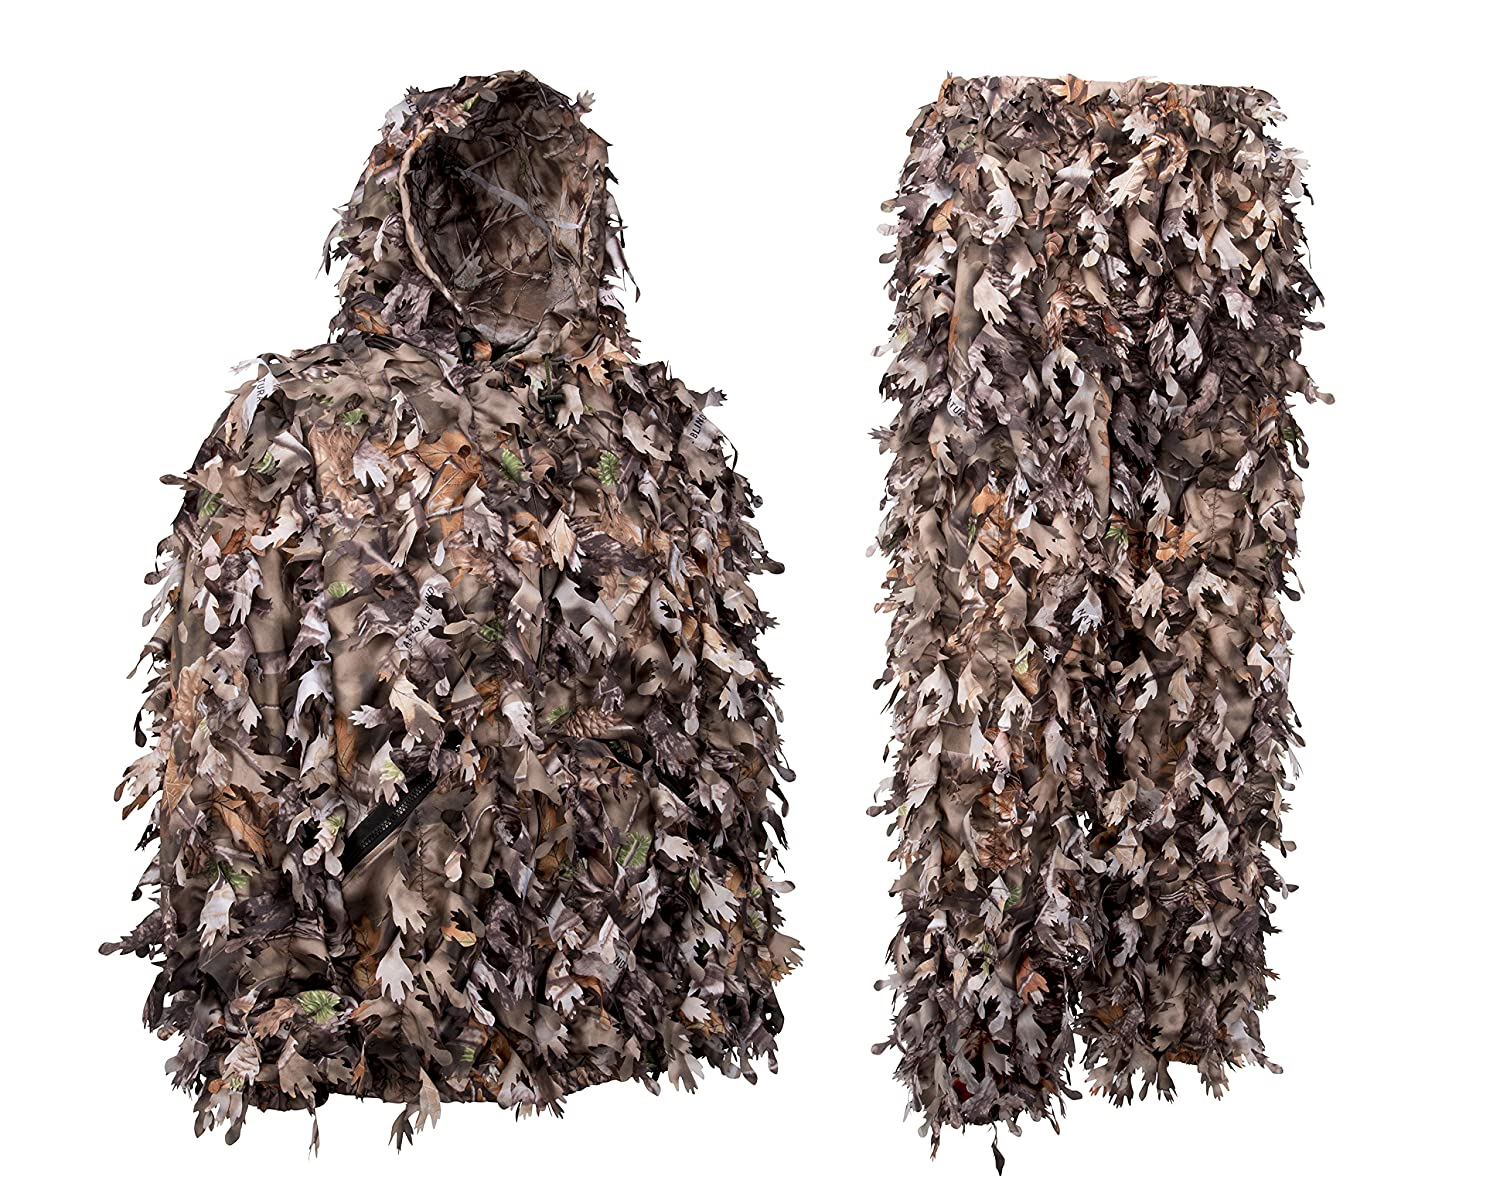 About Ghillie Suit Clothing